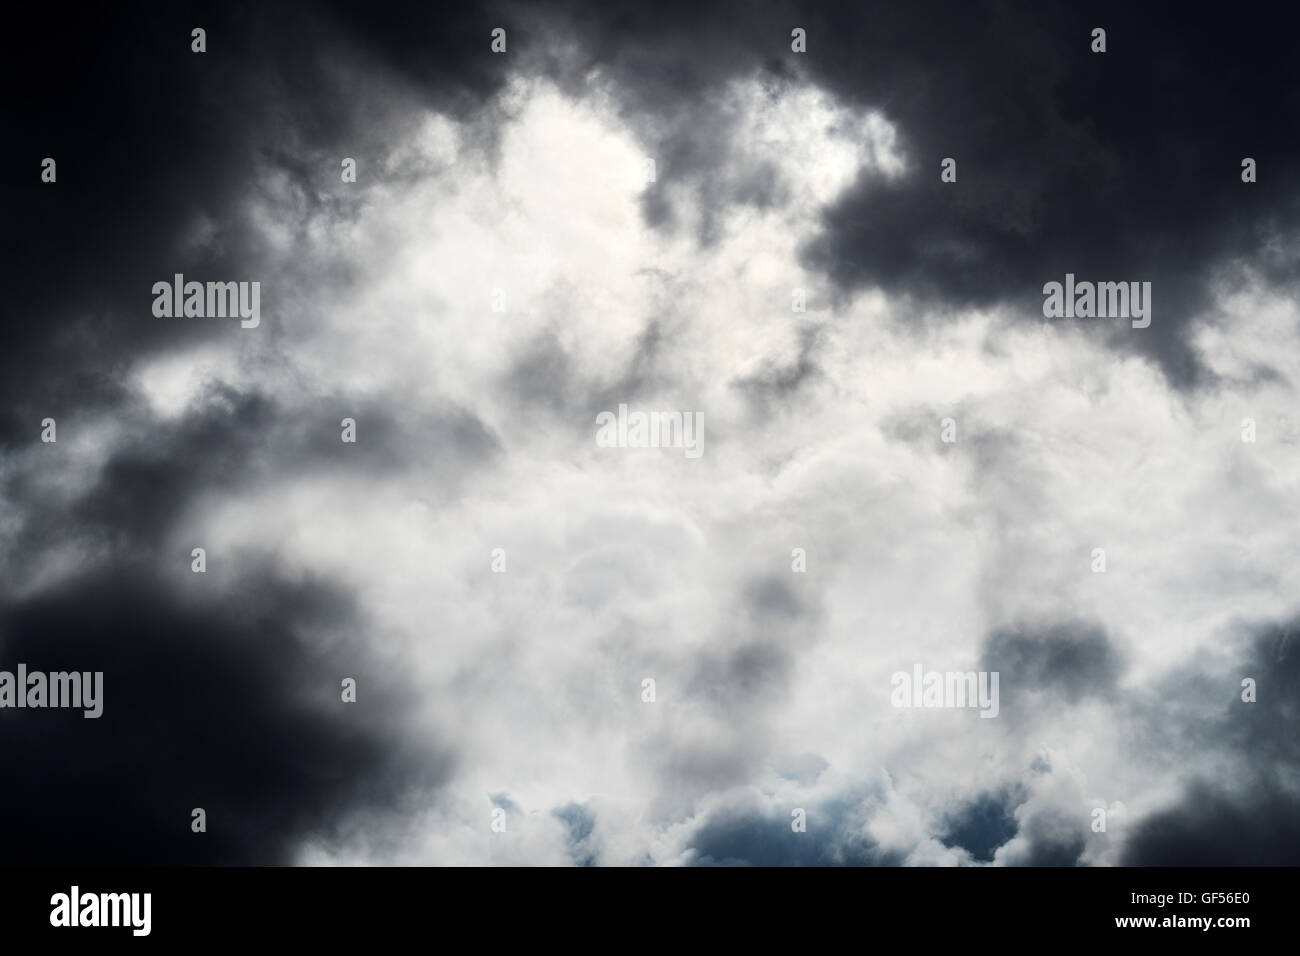 Storm cloud formations in the sky. UK. - Stock Image